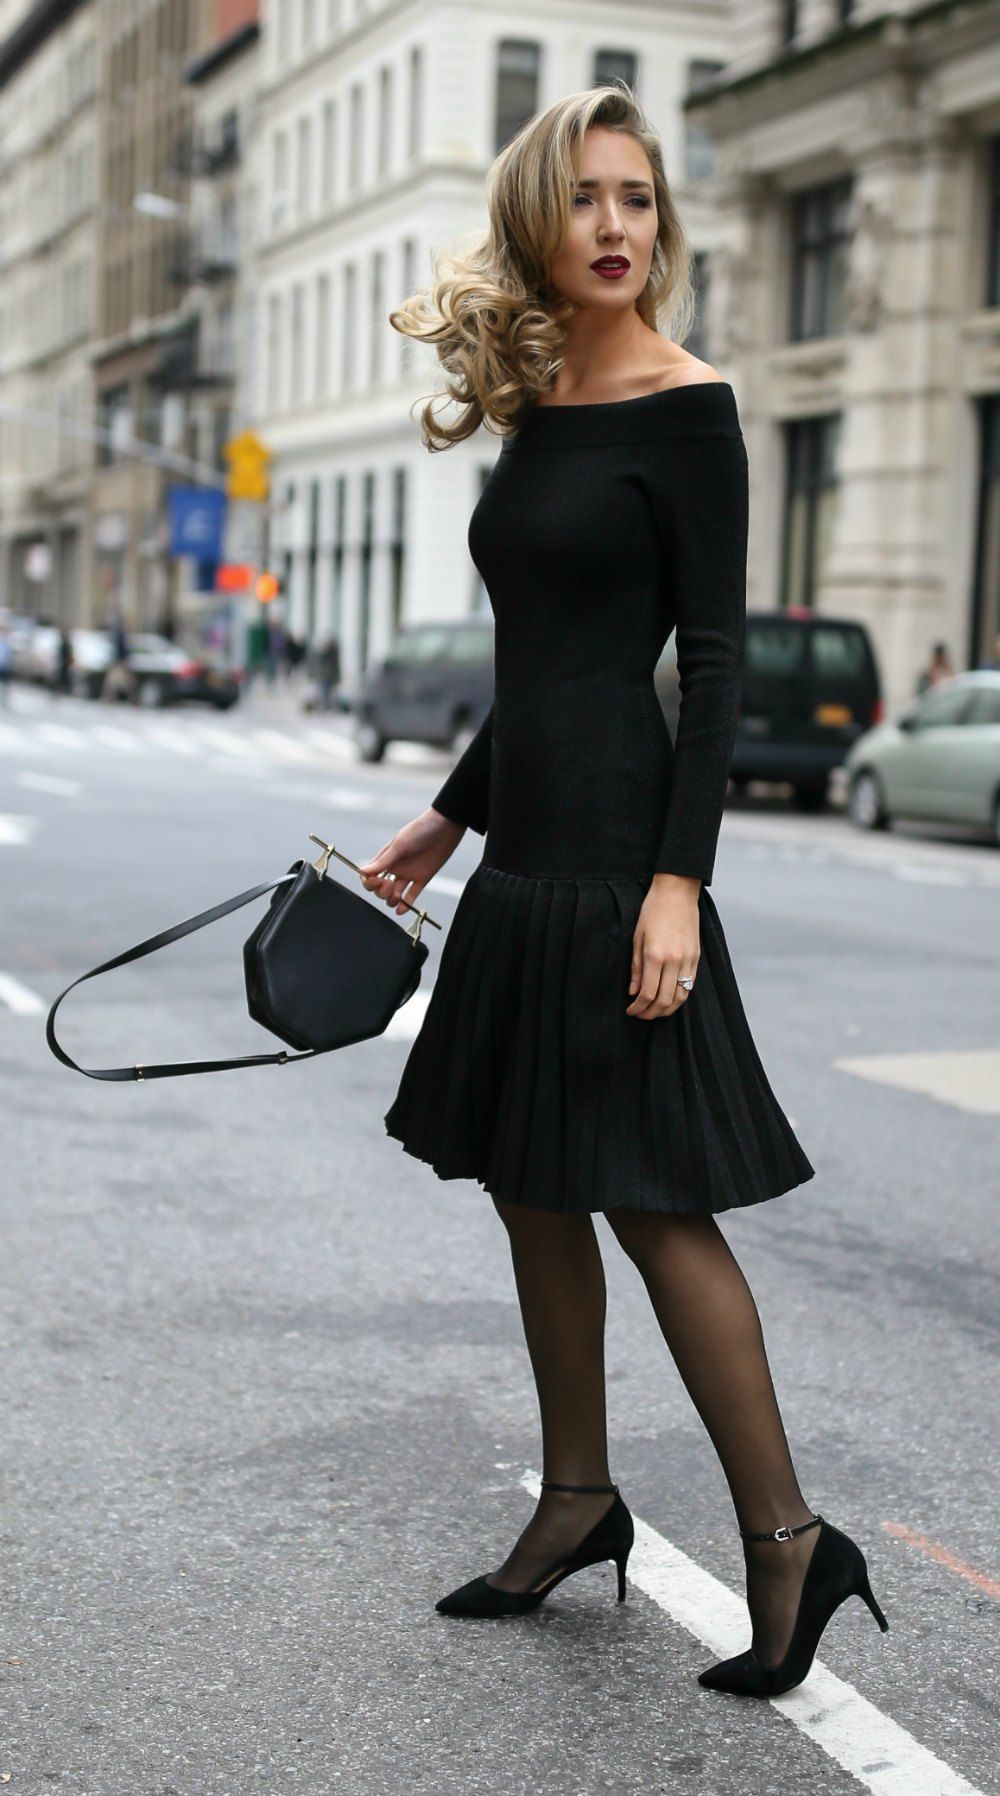 30 Dresses In 30 Days Engagement Party Black Off The Shoulder Pleated Knit Sparkle Dress Black Suede Ankle Strap Sheer Black Tights Fashion Tight Dresses [ 1796 x 1000 Pixel ]